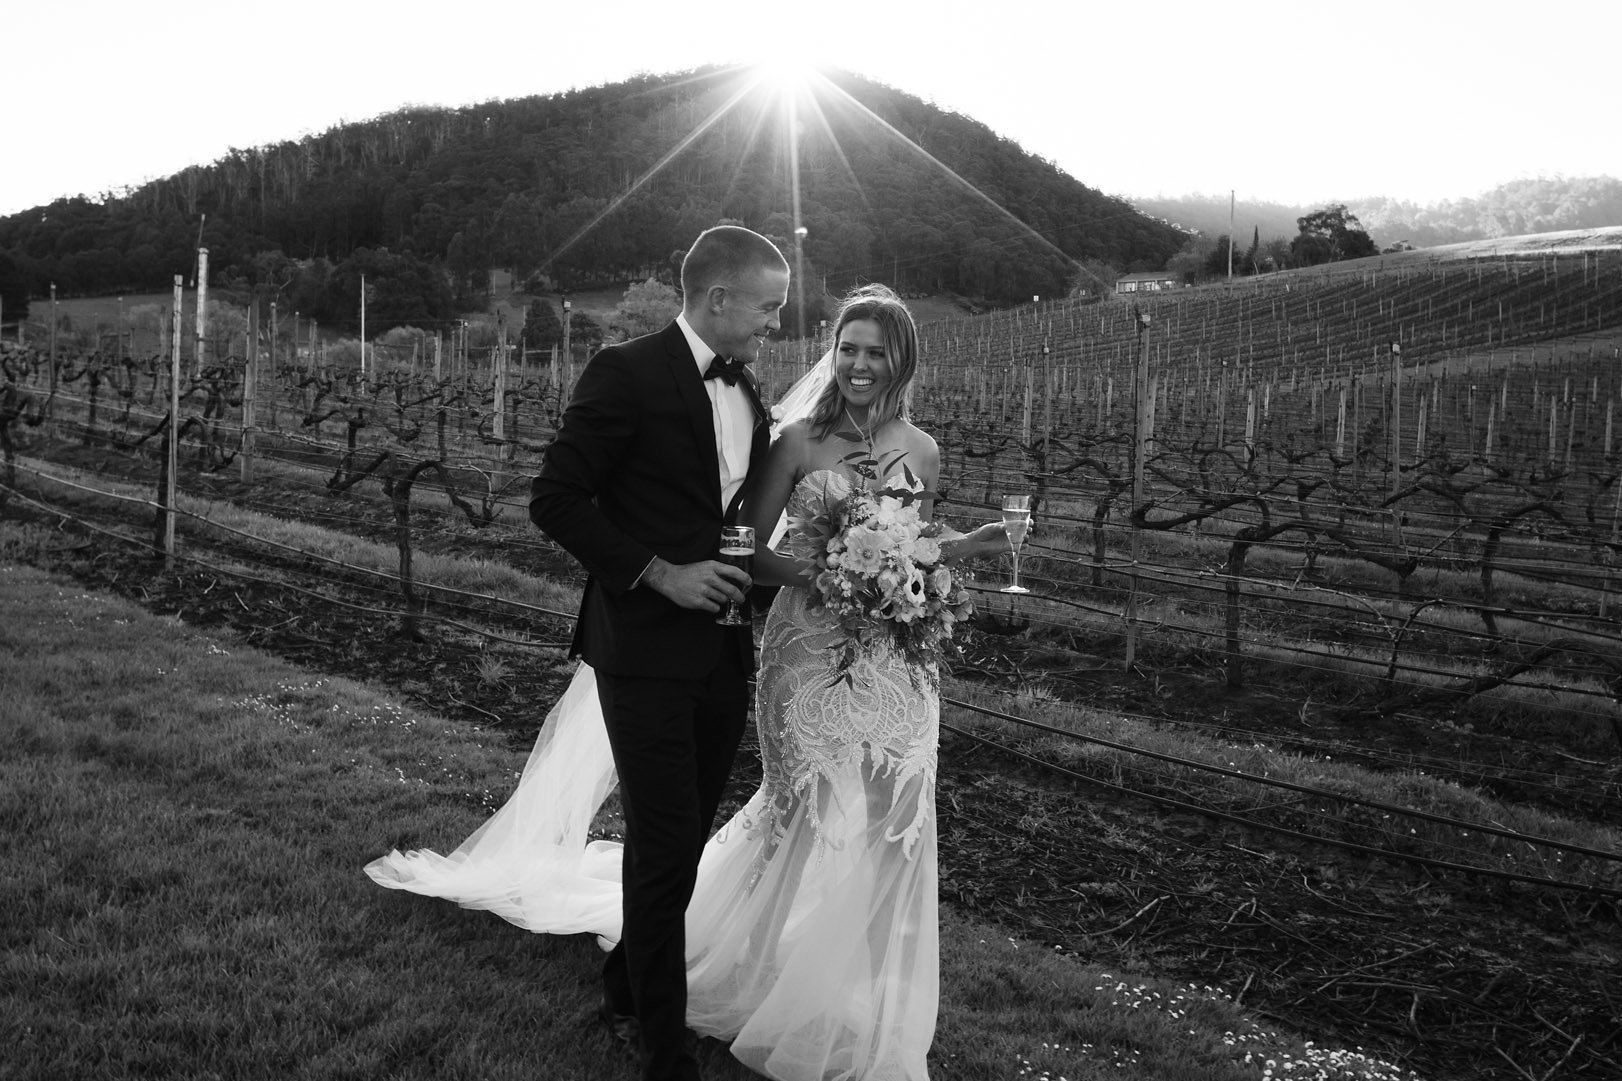 CLAYE & SHELBY - HOMEHILL WINERY, TASMANIA